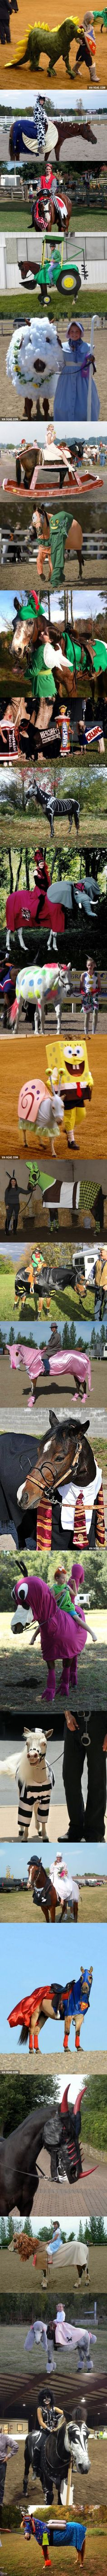 26 Creatively Costumed Horses Who Are Masters Of Disguise. Love these!!!